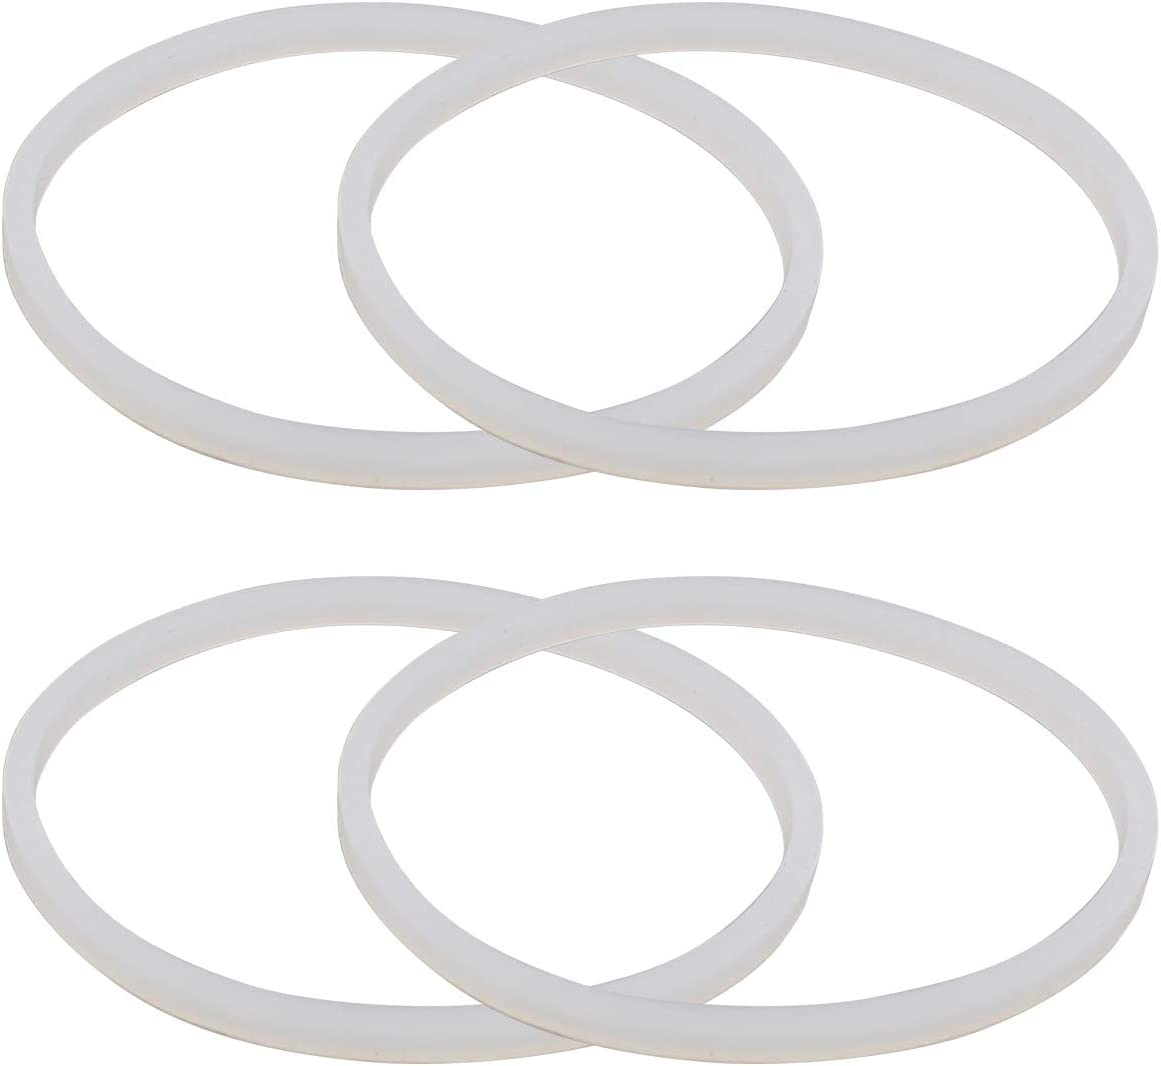 ApplianPar Blender Gasket Sealing O Ring White Rubber for Ninja Juicer Blender Pack of 4